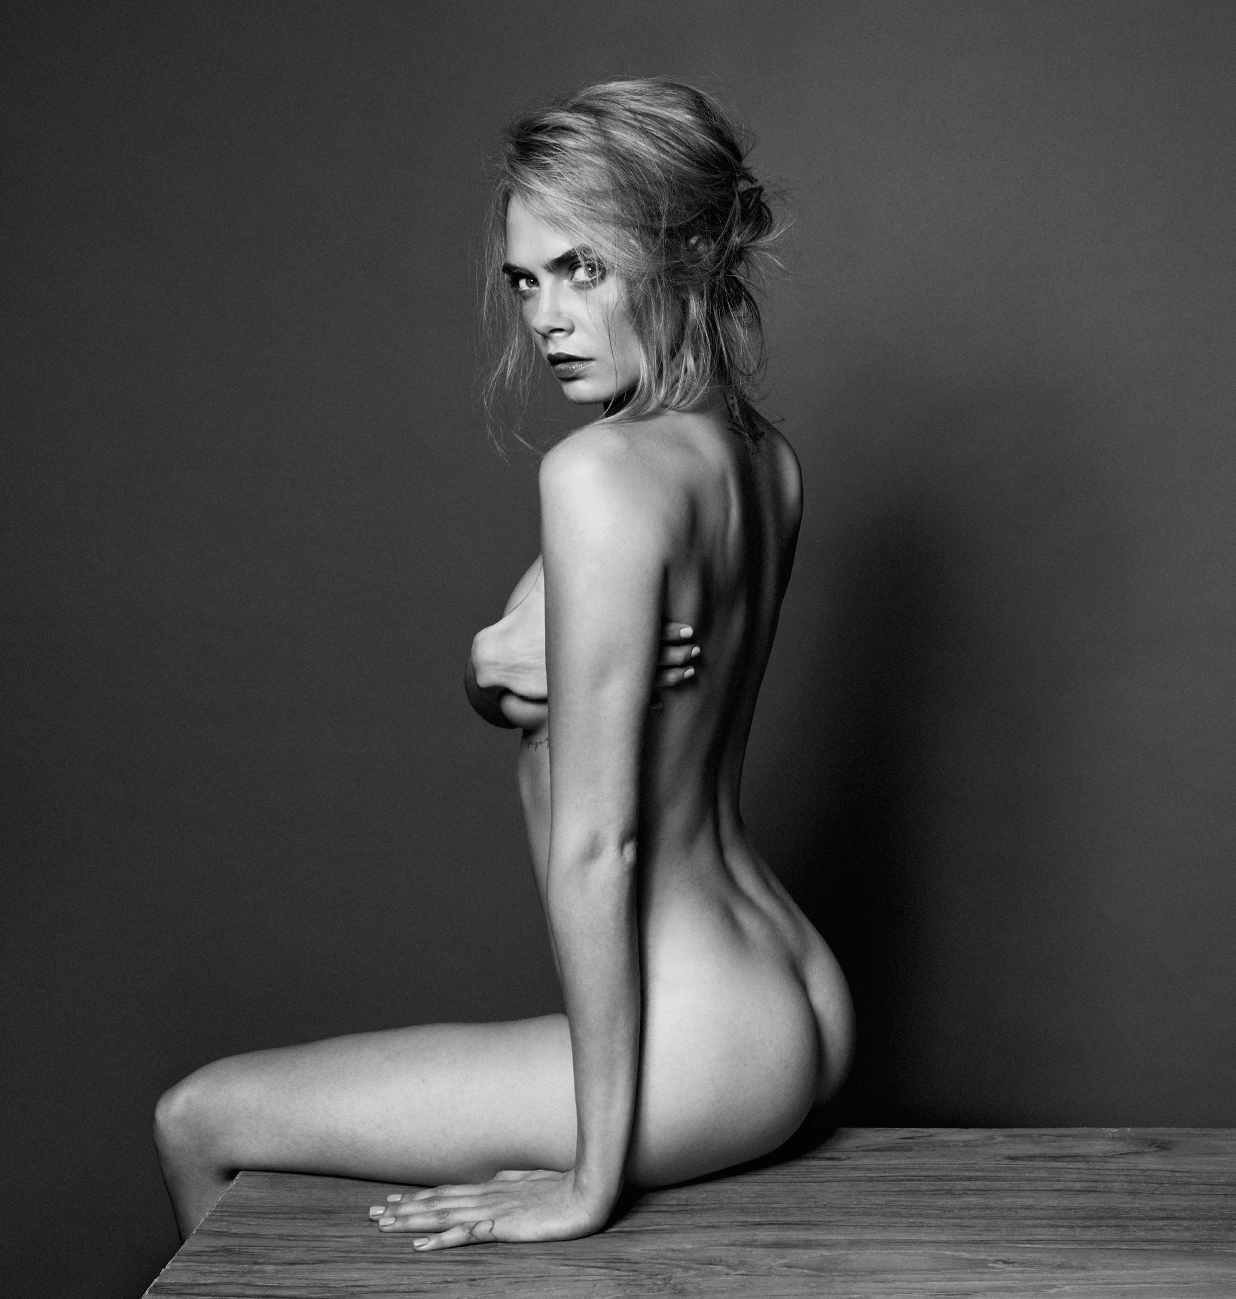 Delevingne nude photos cara tell more detail